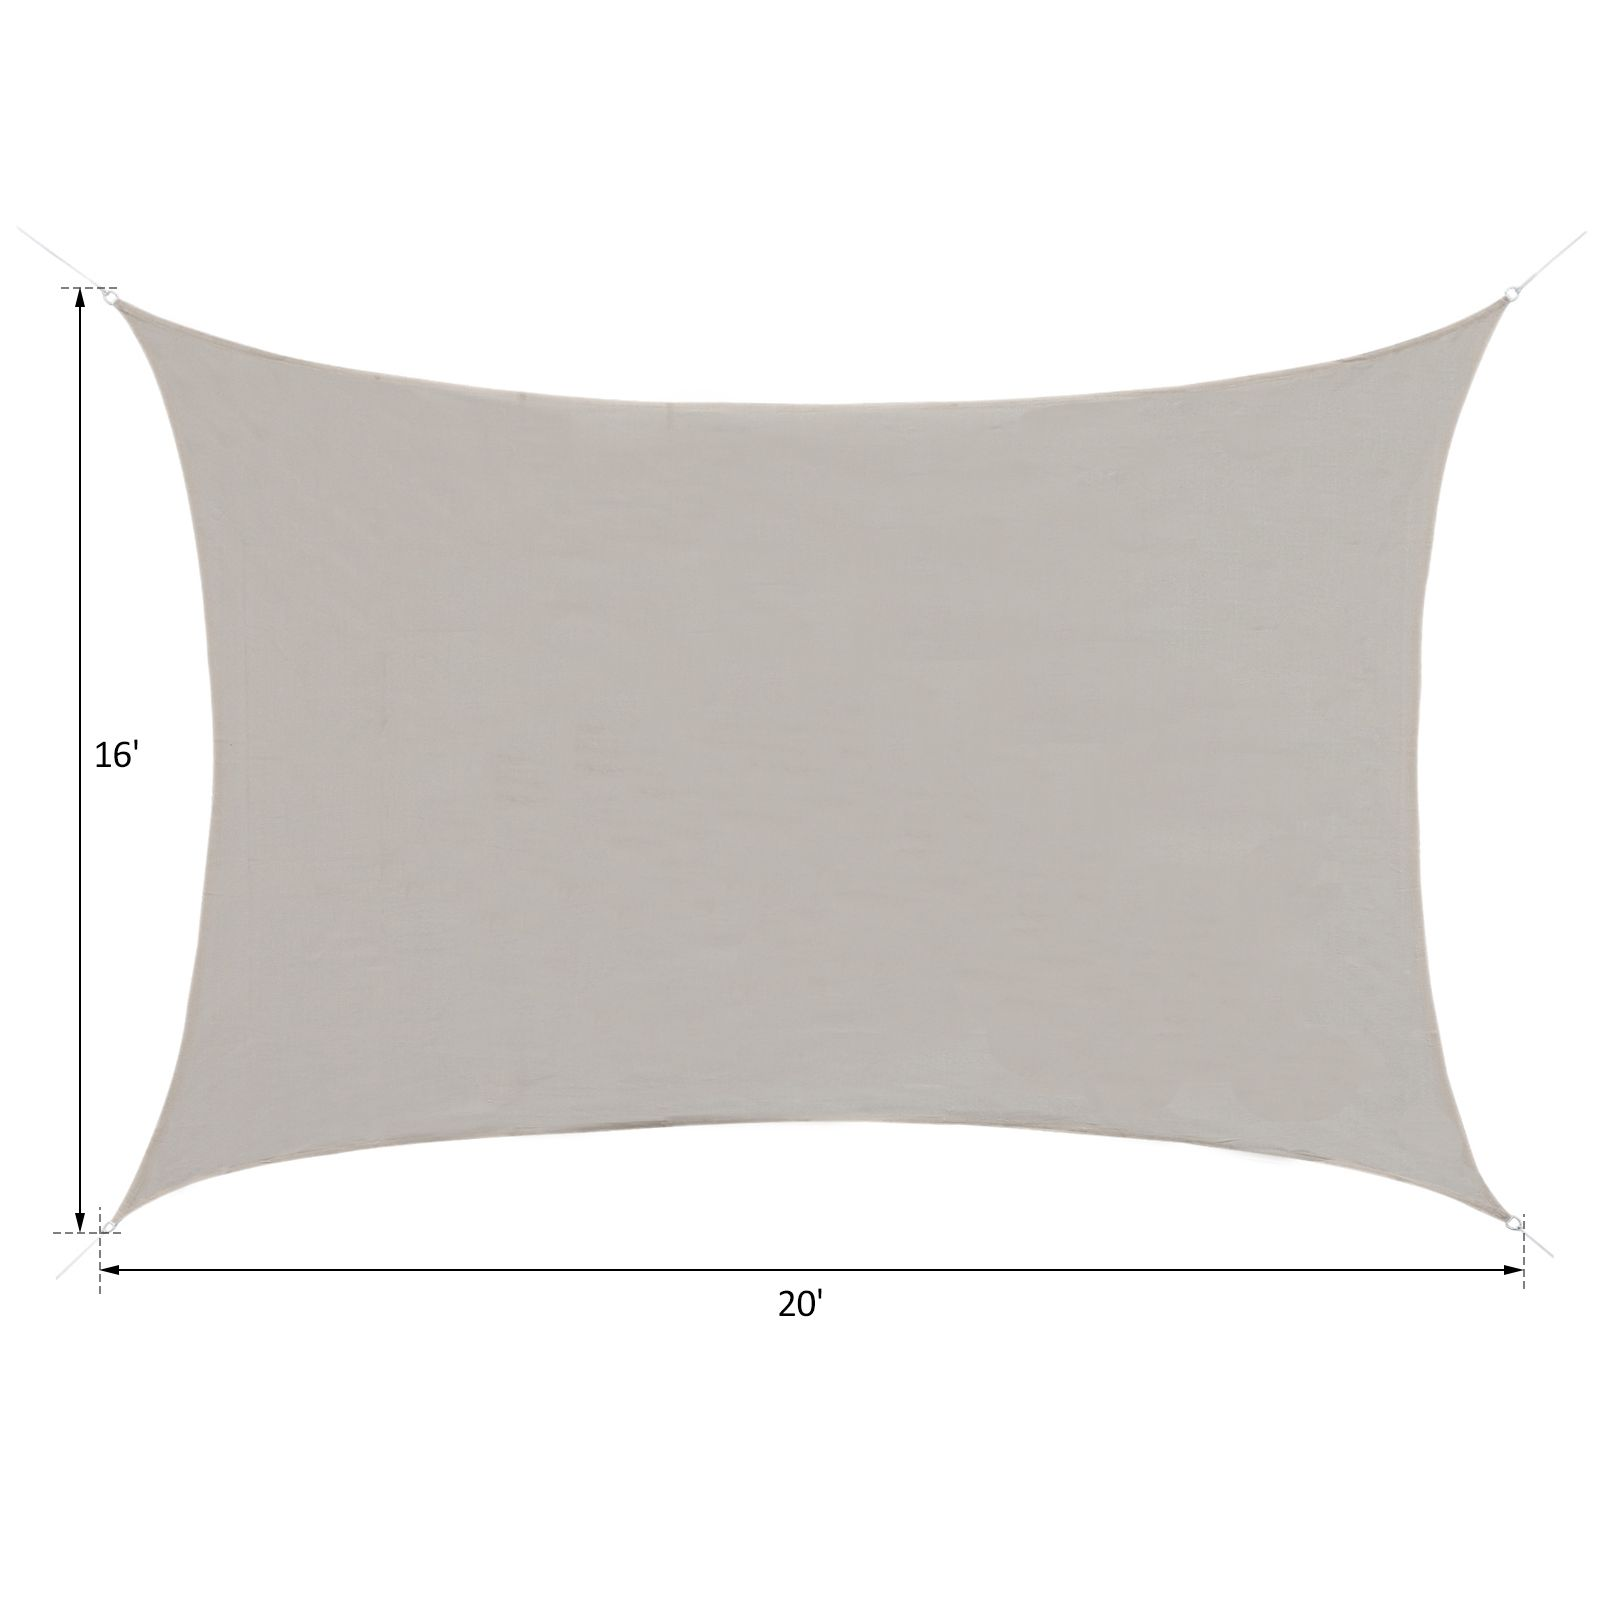 Sun-Shade-Sail-UV-Top-Cover-Outdoor-Canopy-Patio-Triangle-Square-Rectangle-w-Bag thumbnail 15